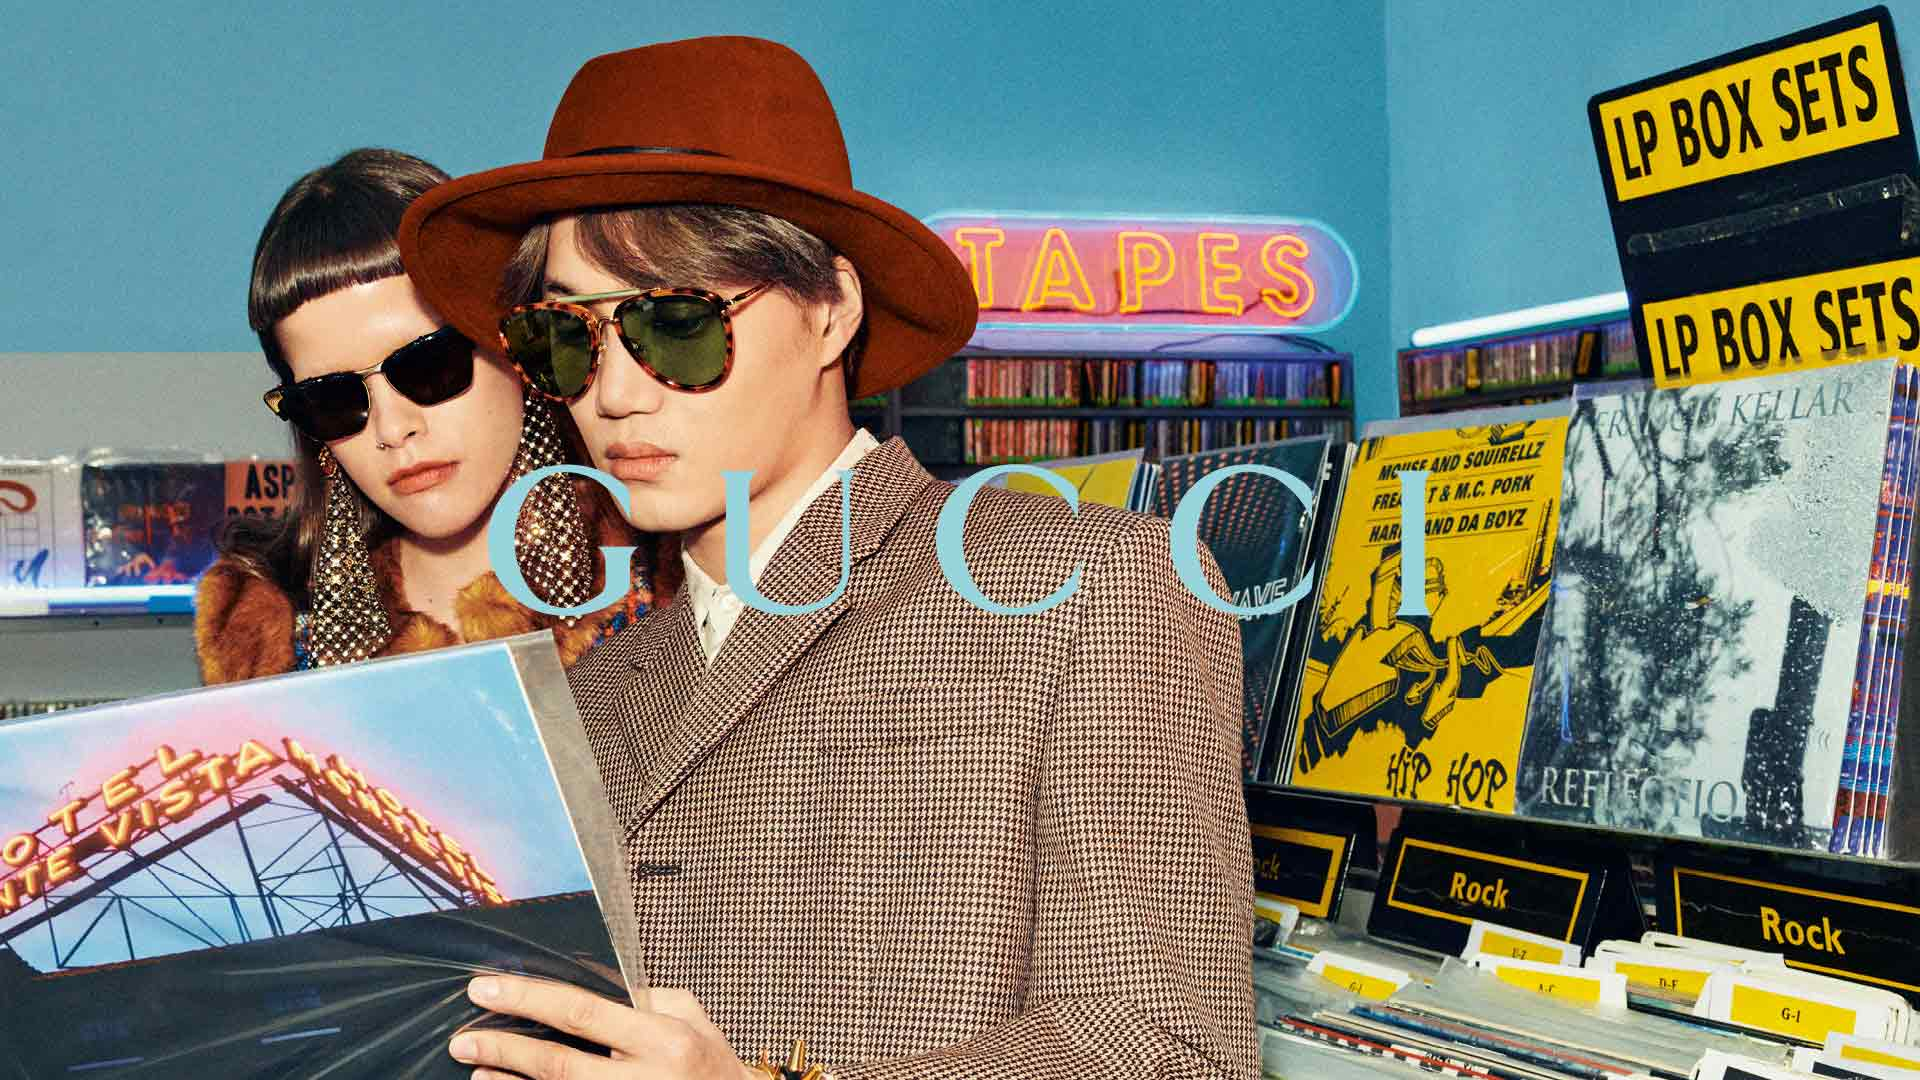 7120_OB_1920x1080px_Gucci_SUN-Couple_BrandPage